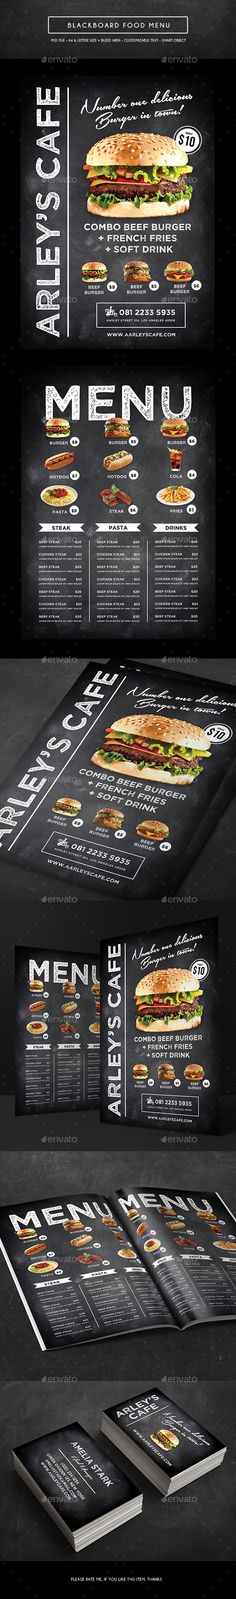 Blackboard Menu + Business Card Template PSD. Download here: http://graphicriver.net/item/blackboard-menu-business-card/15814356?ref=ksioks